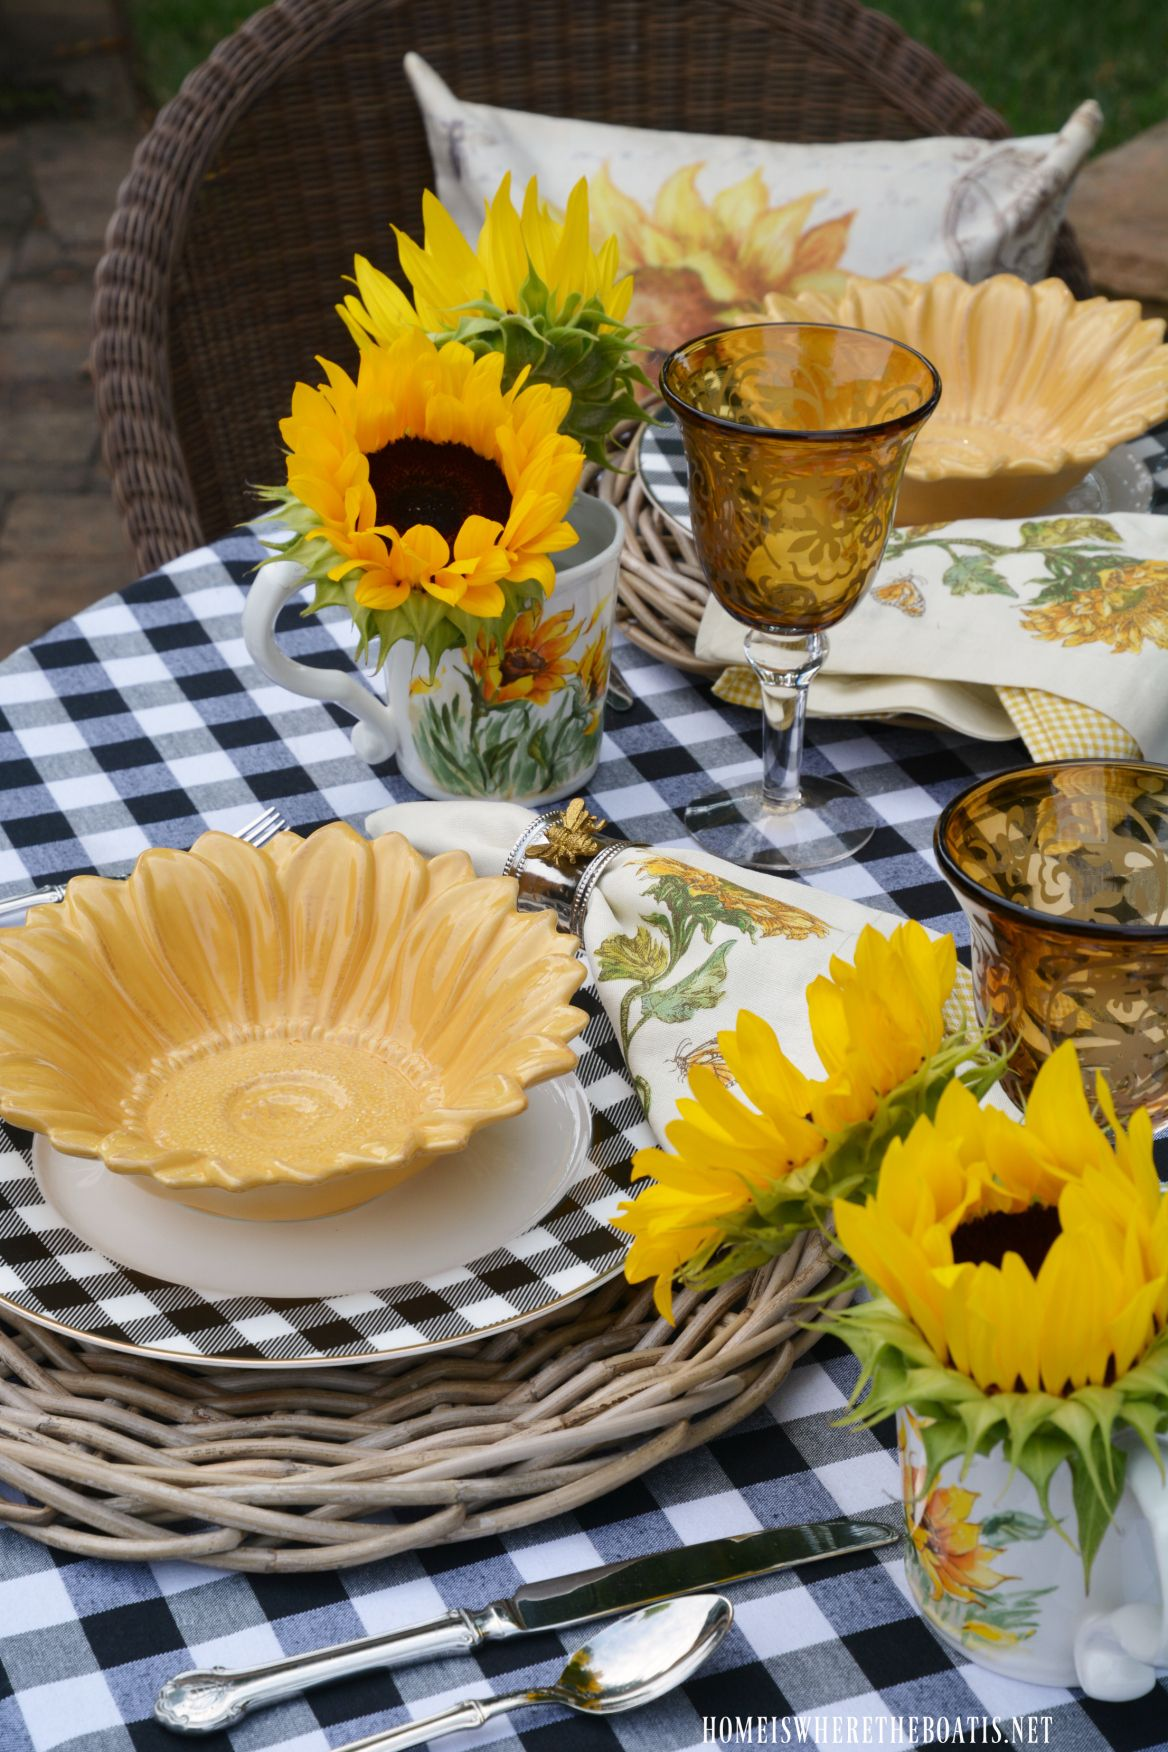 Lakeside Table With Sunflowers And Black And White Spring Table Decor Spring Table Table Decorations